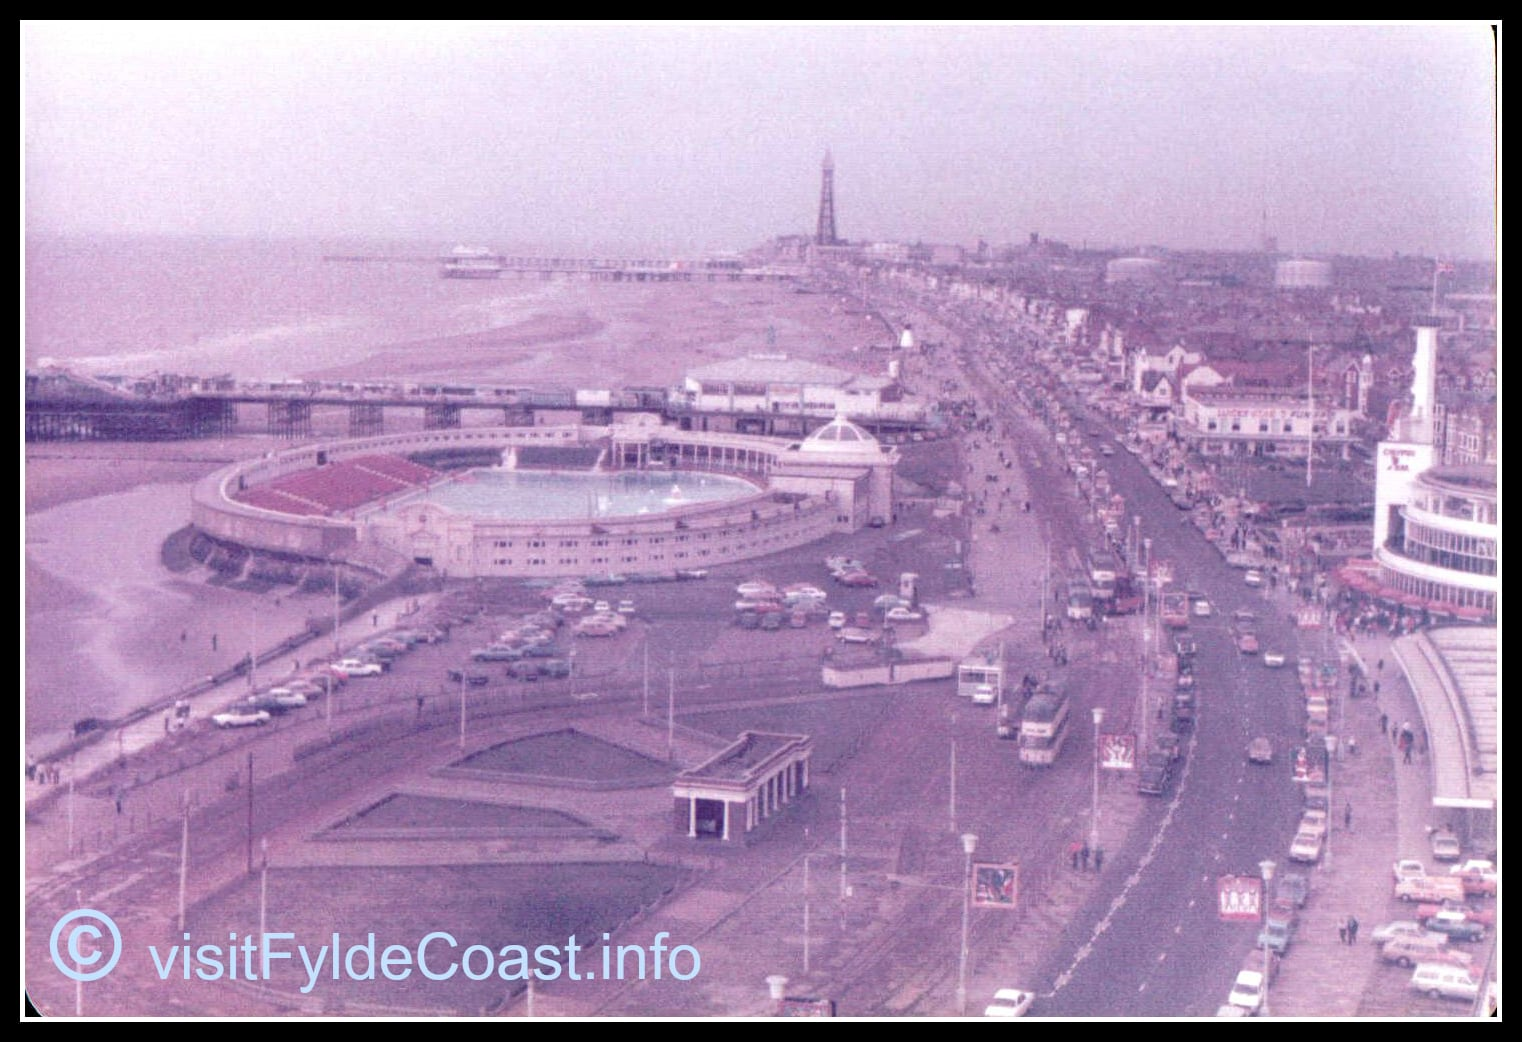 Blackpool Open Air Baths. Our Old Blackpool Photos - archives from Visit Fylde Coast